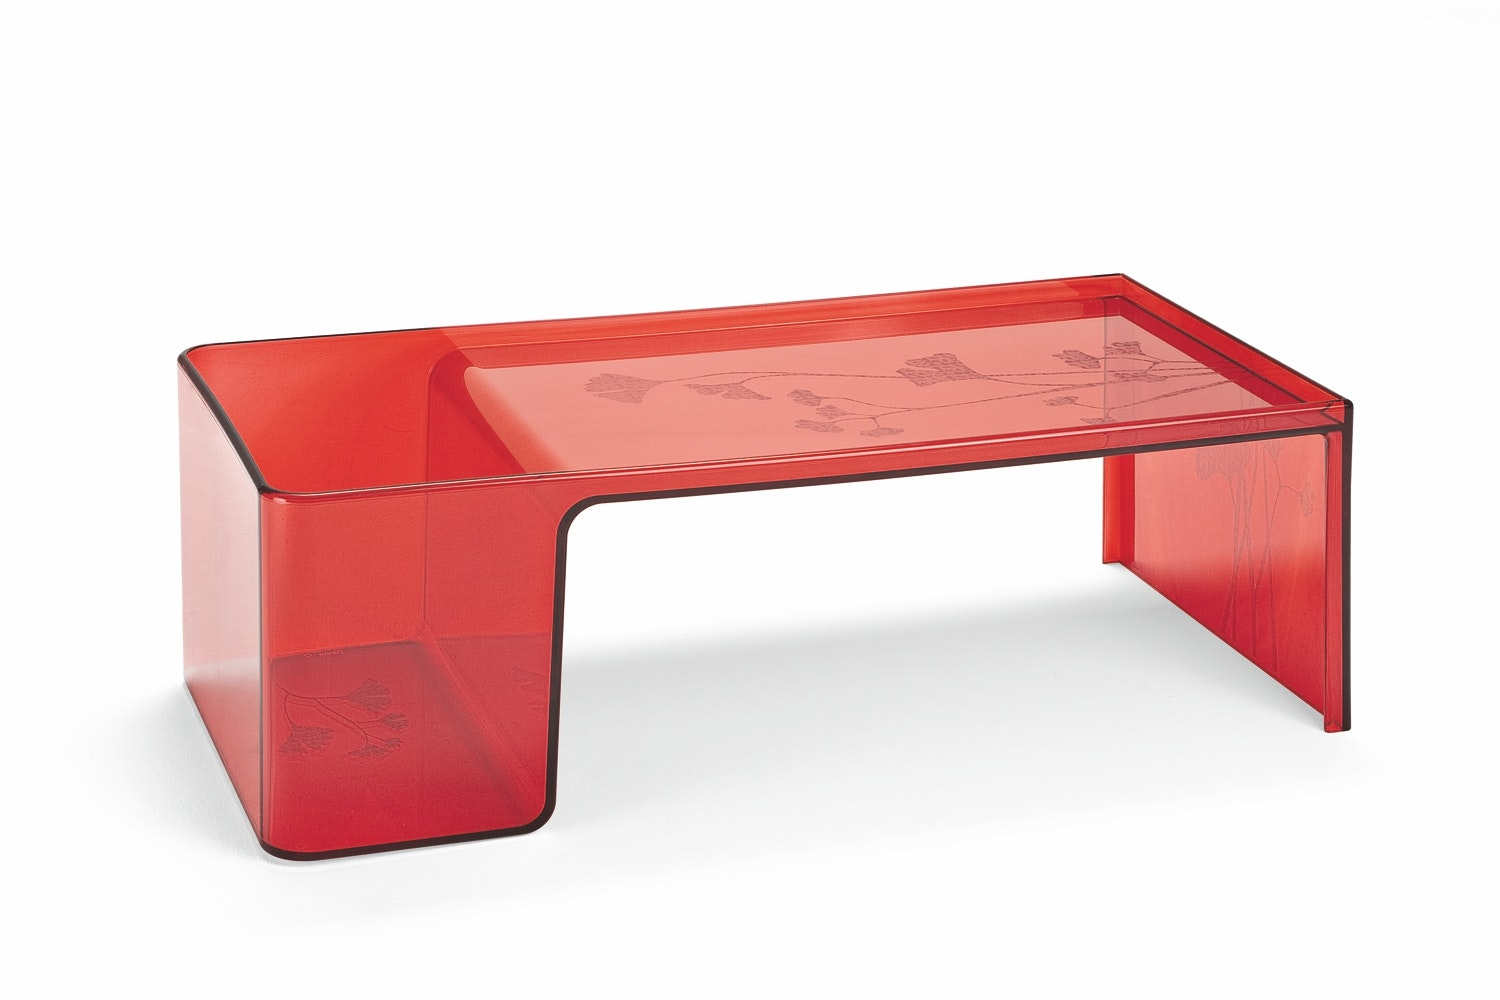 Usame Low Table by Patricia Urquiola for Kartell